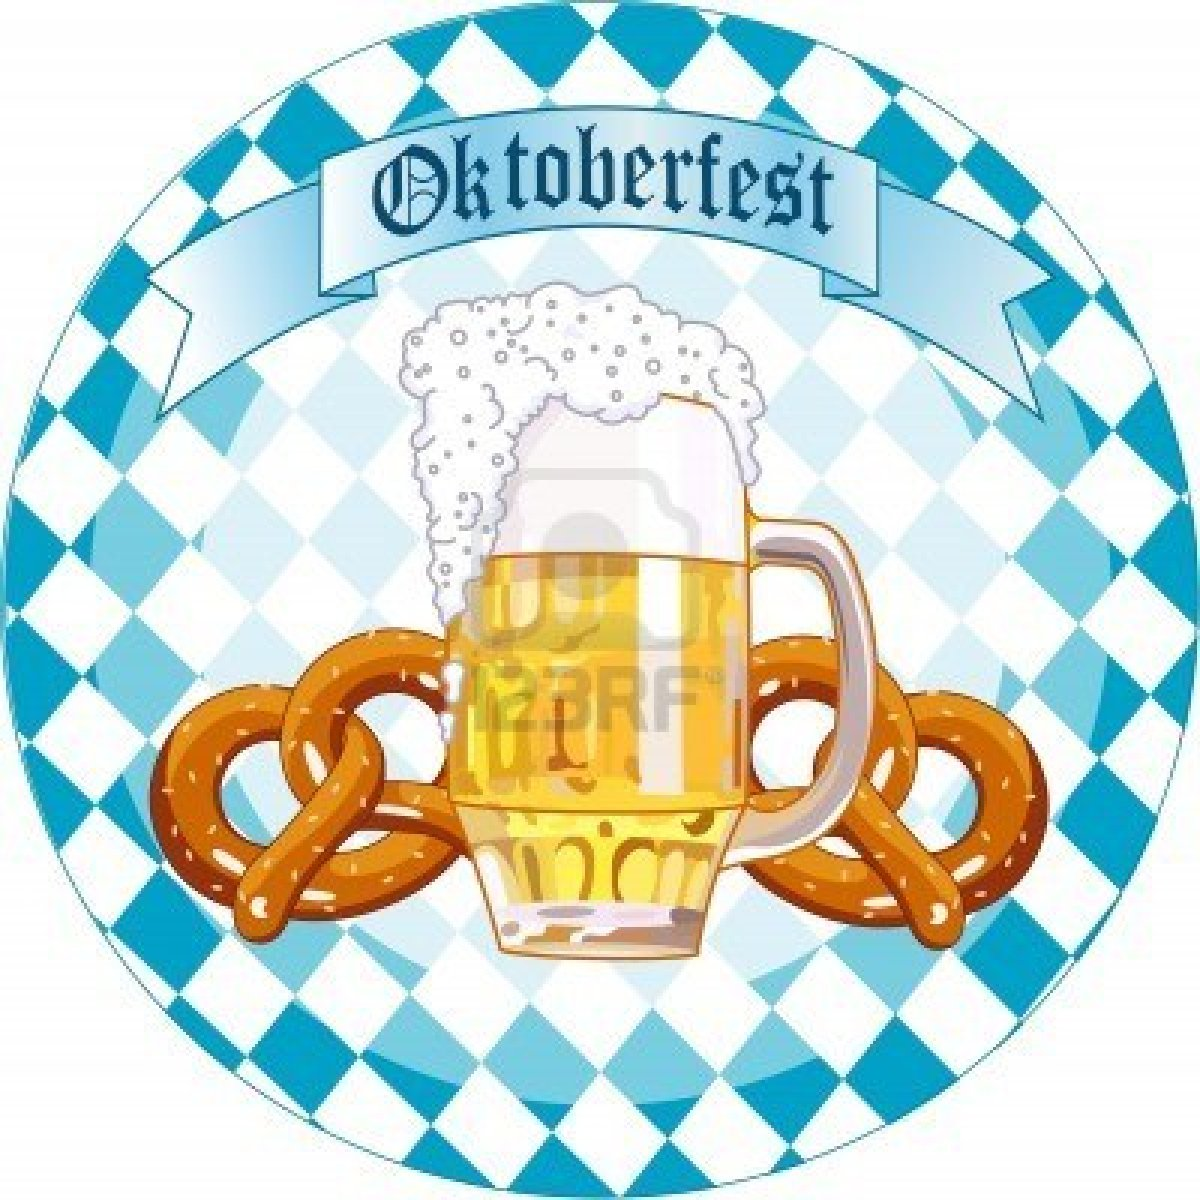 7628226 Round Oktoberfest Celebration Design With Beer And Pretzel